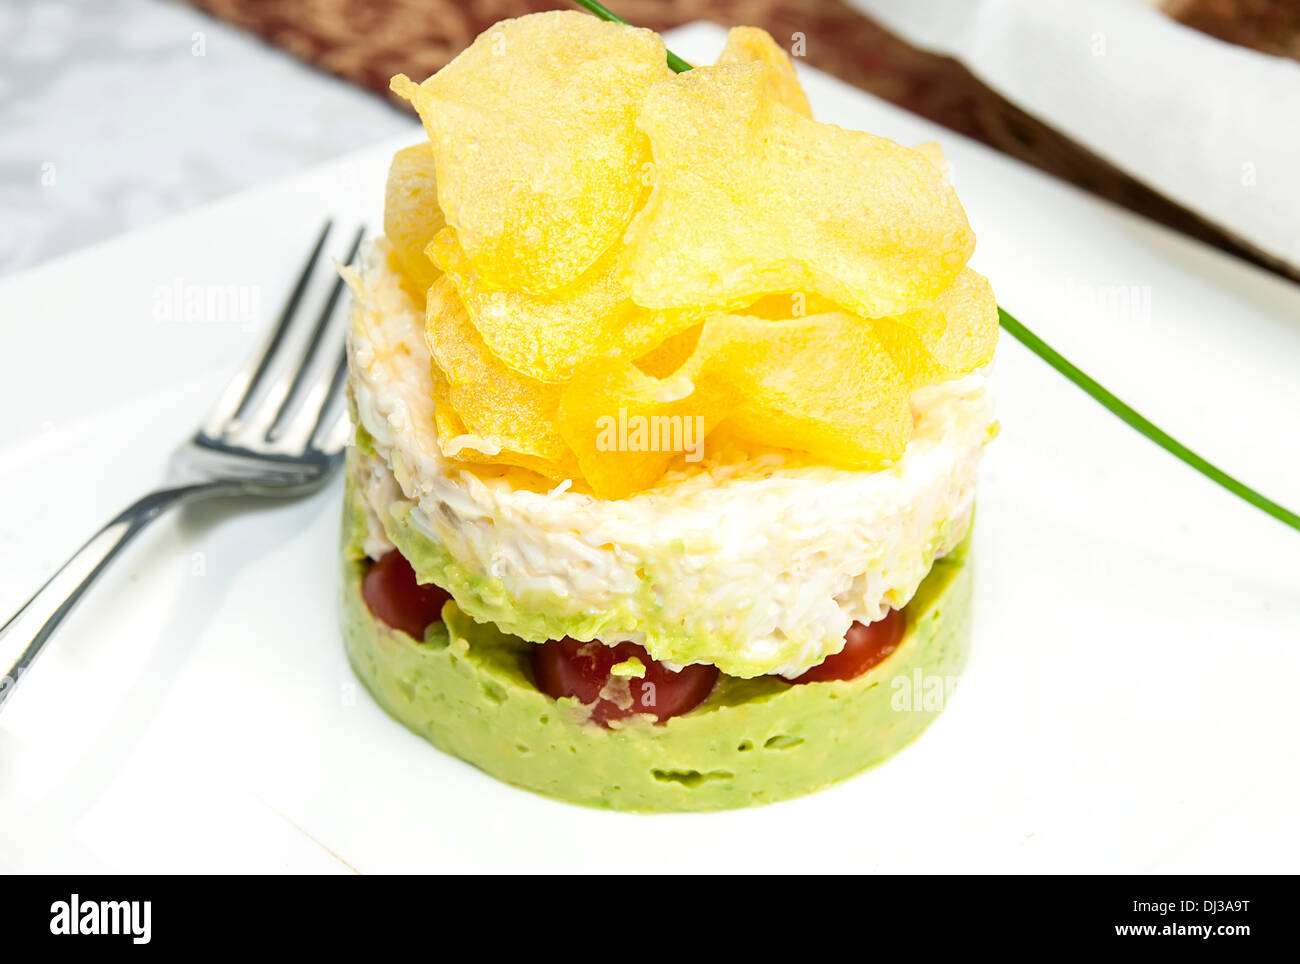 salad with vegetables and mashed potatoes with cheese - Stock Image